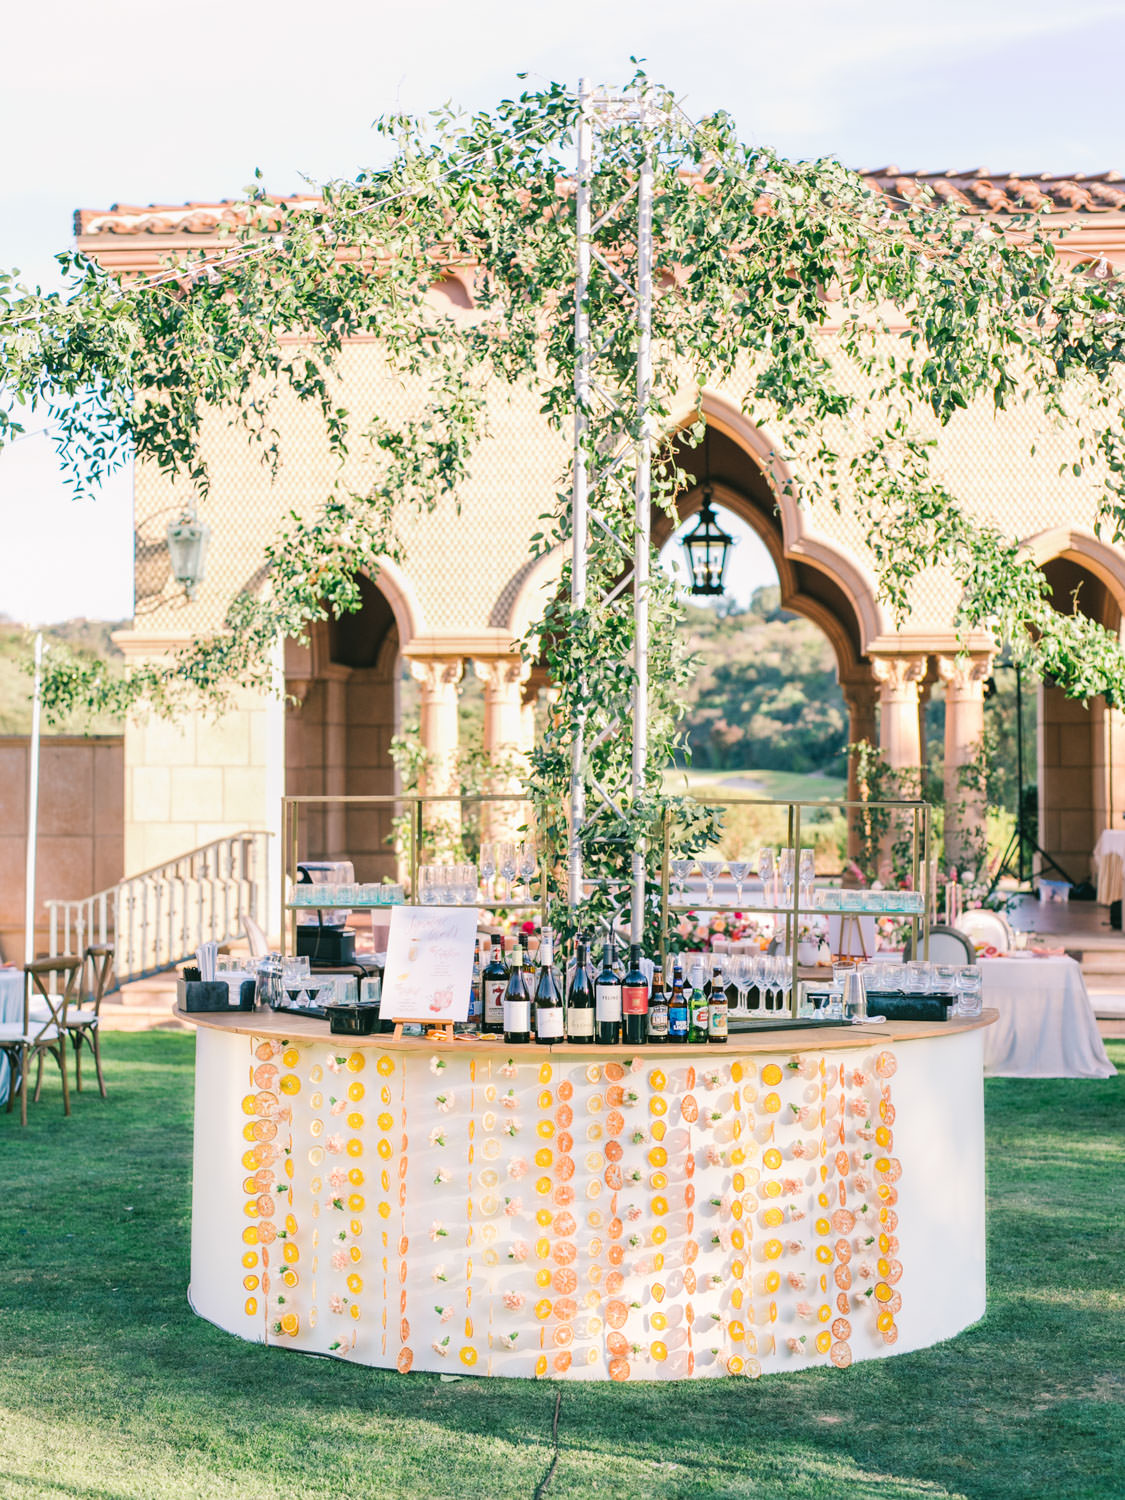 Round circular bar with wagon wheel market lighting covered in greenery smilax. Hanging dried fruit from the bar. A Wedding Photographer's Fairmont Grand Del Mar Wedding